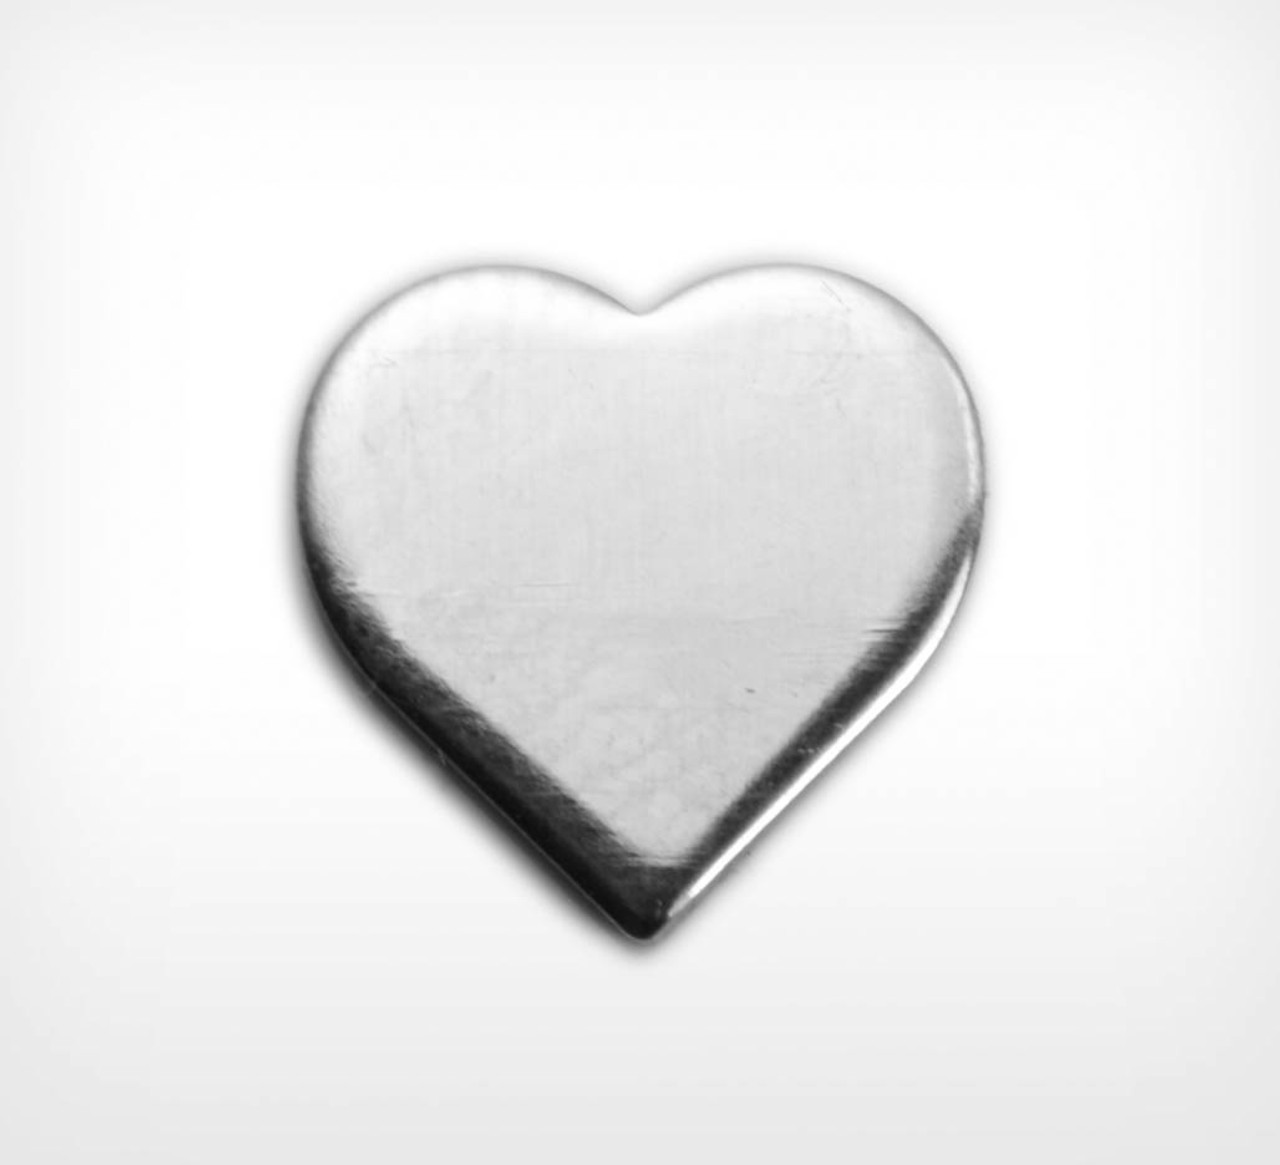 Aluminium Heart, v/small - Pack of 10 (789-AL)